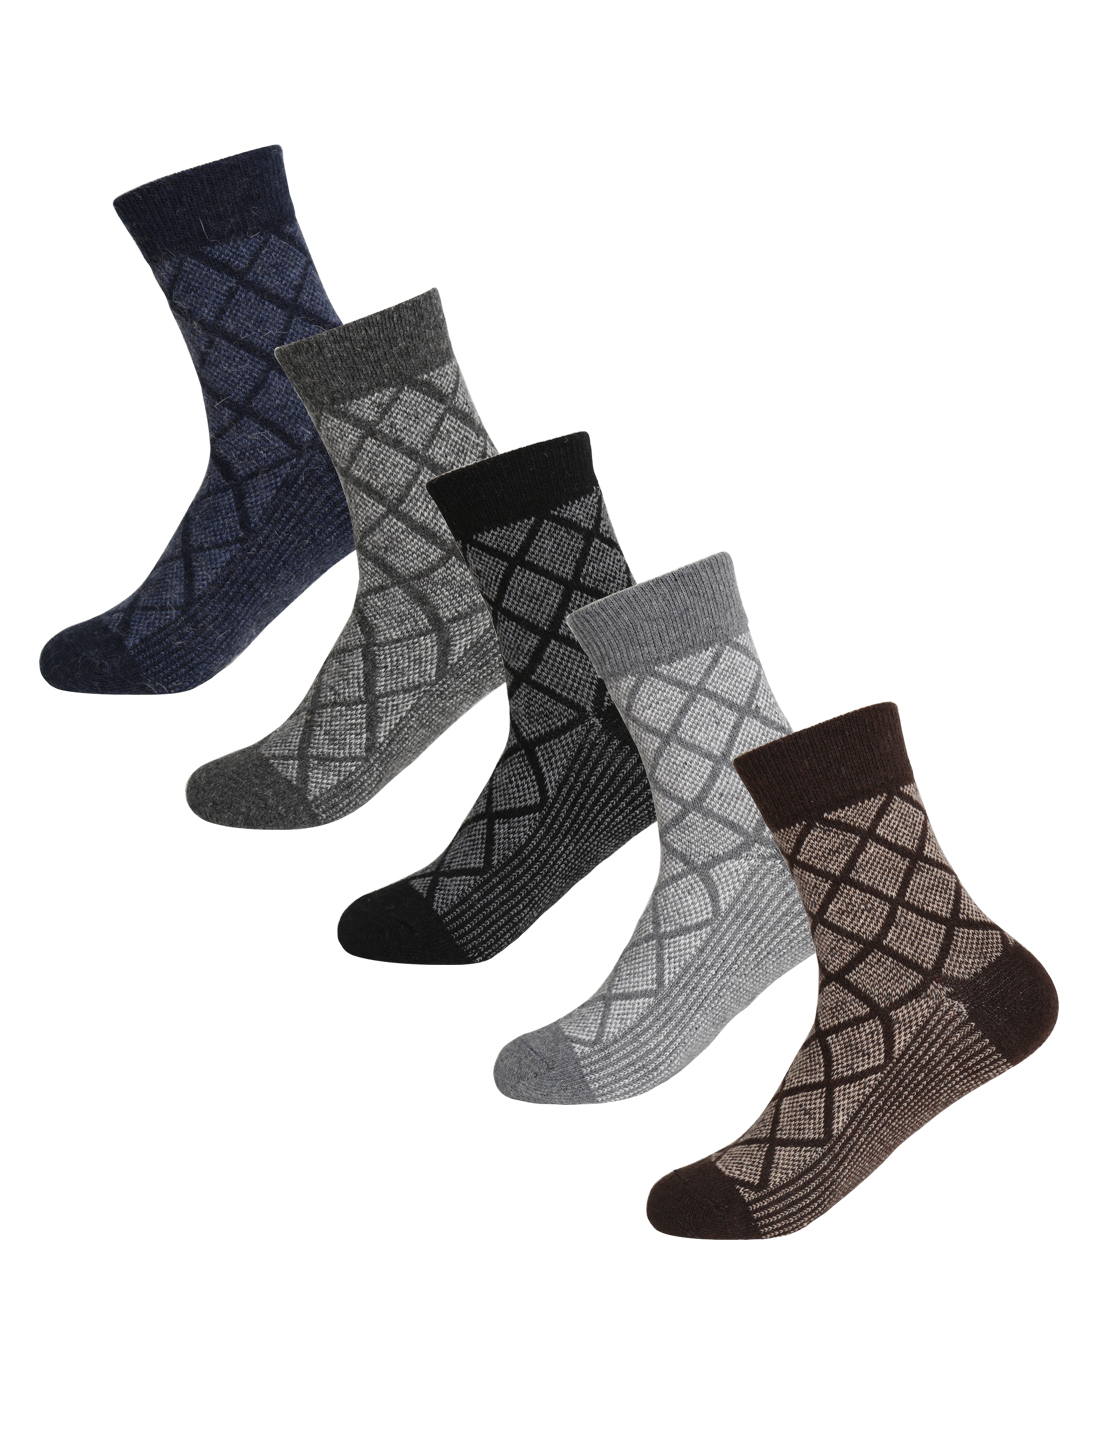 Men 5 Pack Argyle Prints Thermal Wool Crew Socks 10-12 Assorted-Argyle